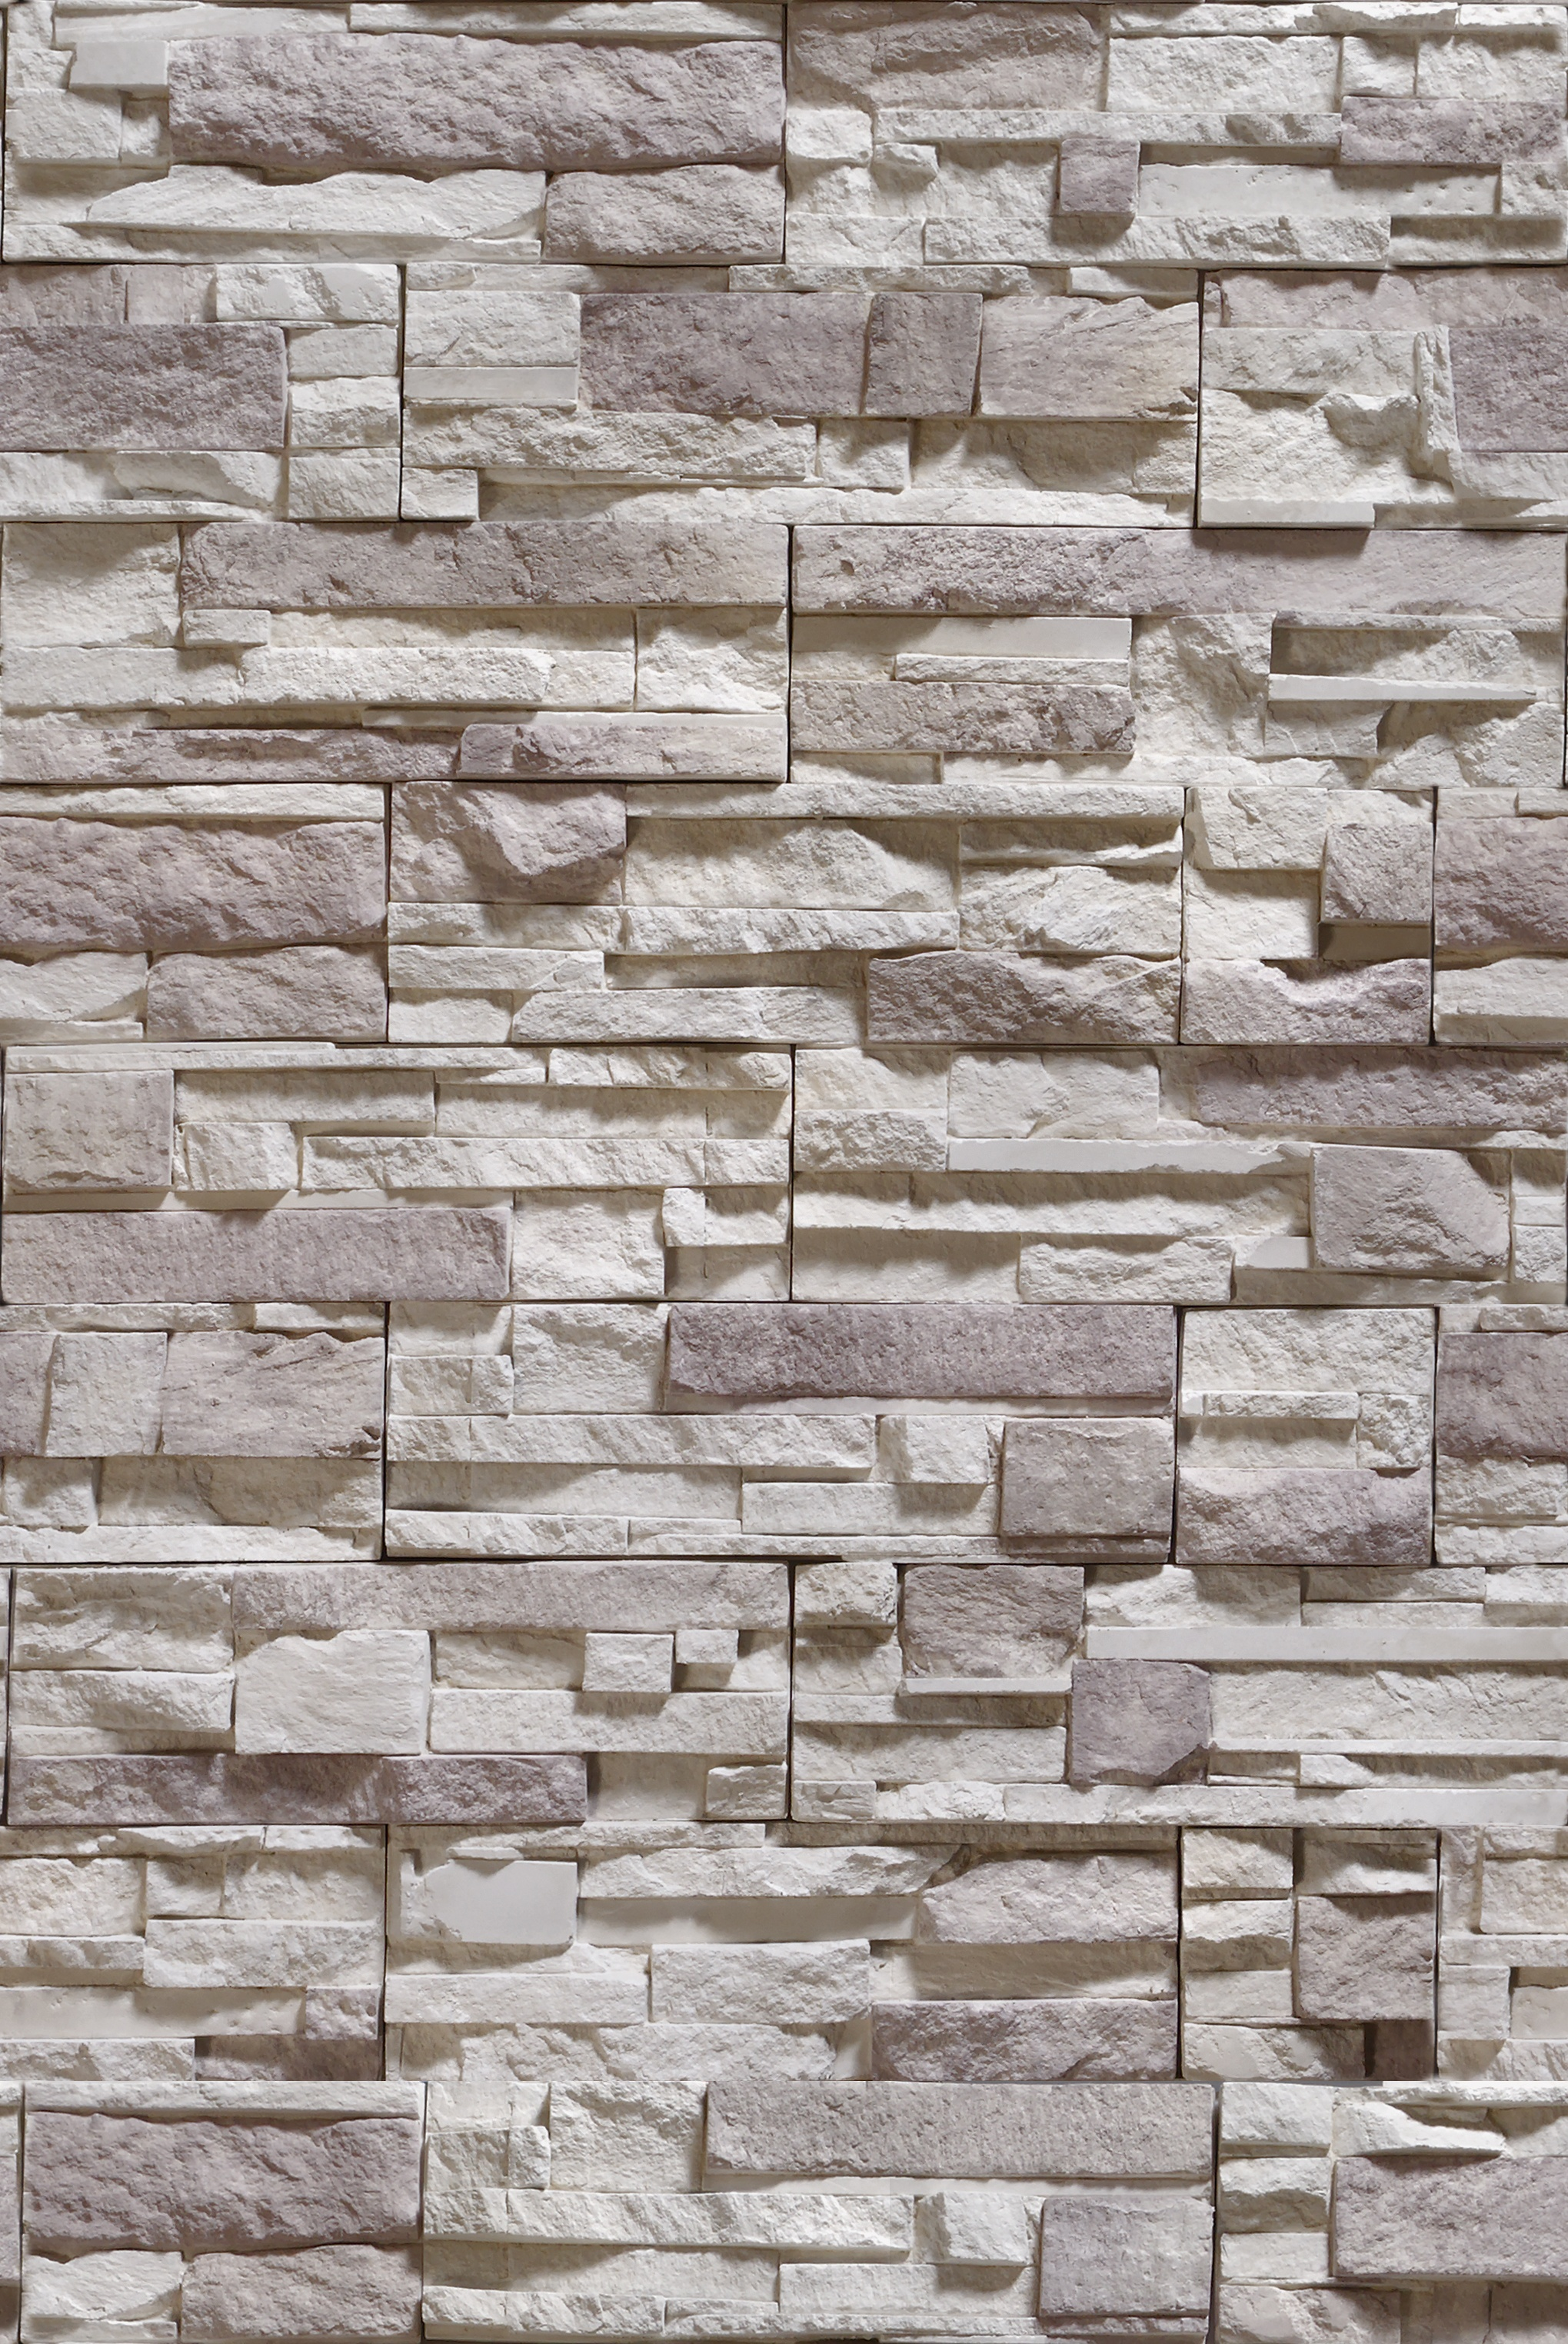 stone, wall, texture stone, stone wall, download background, stone background